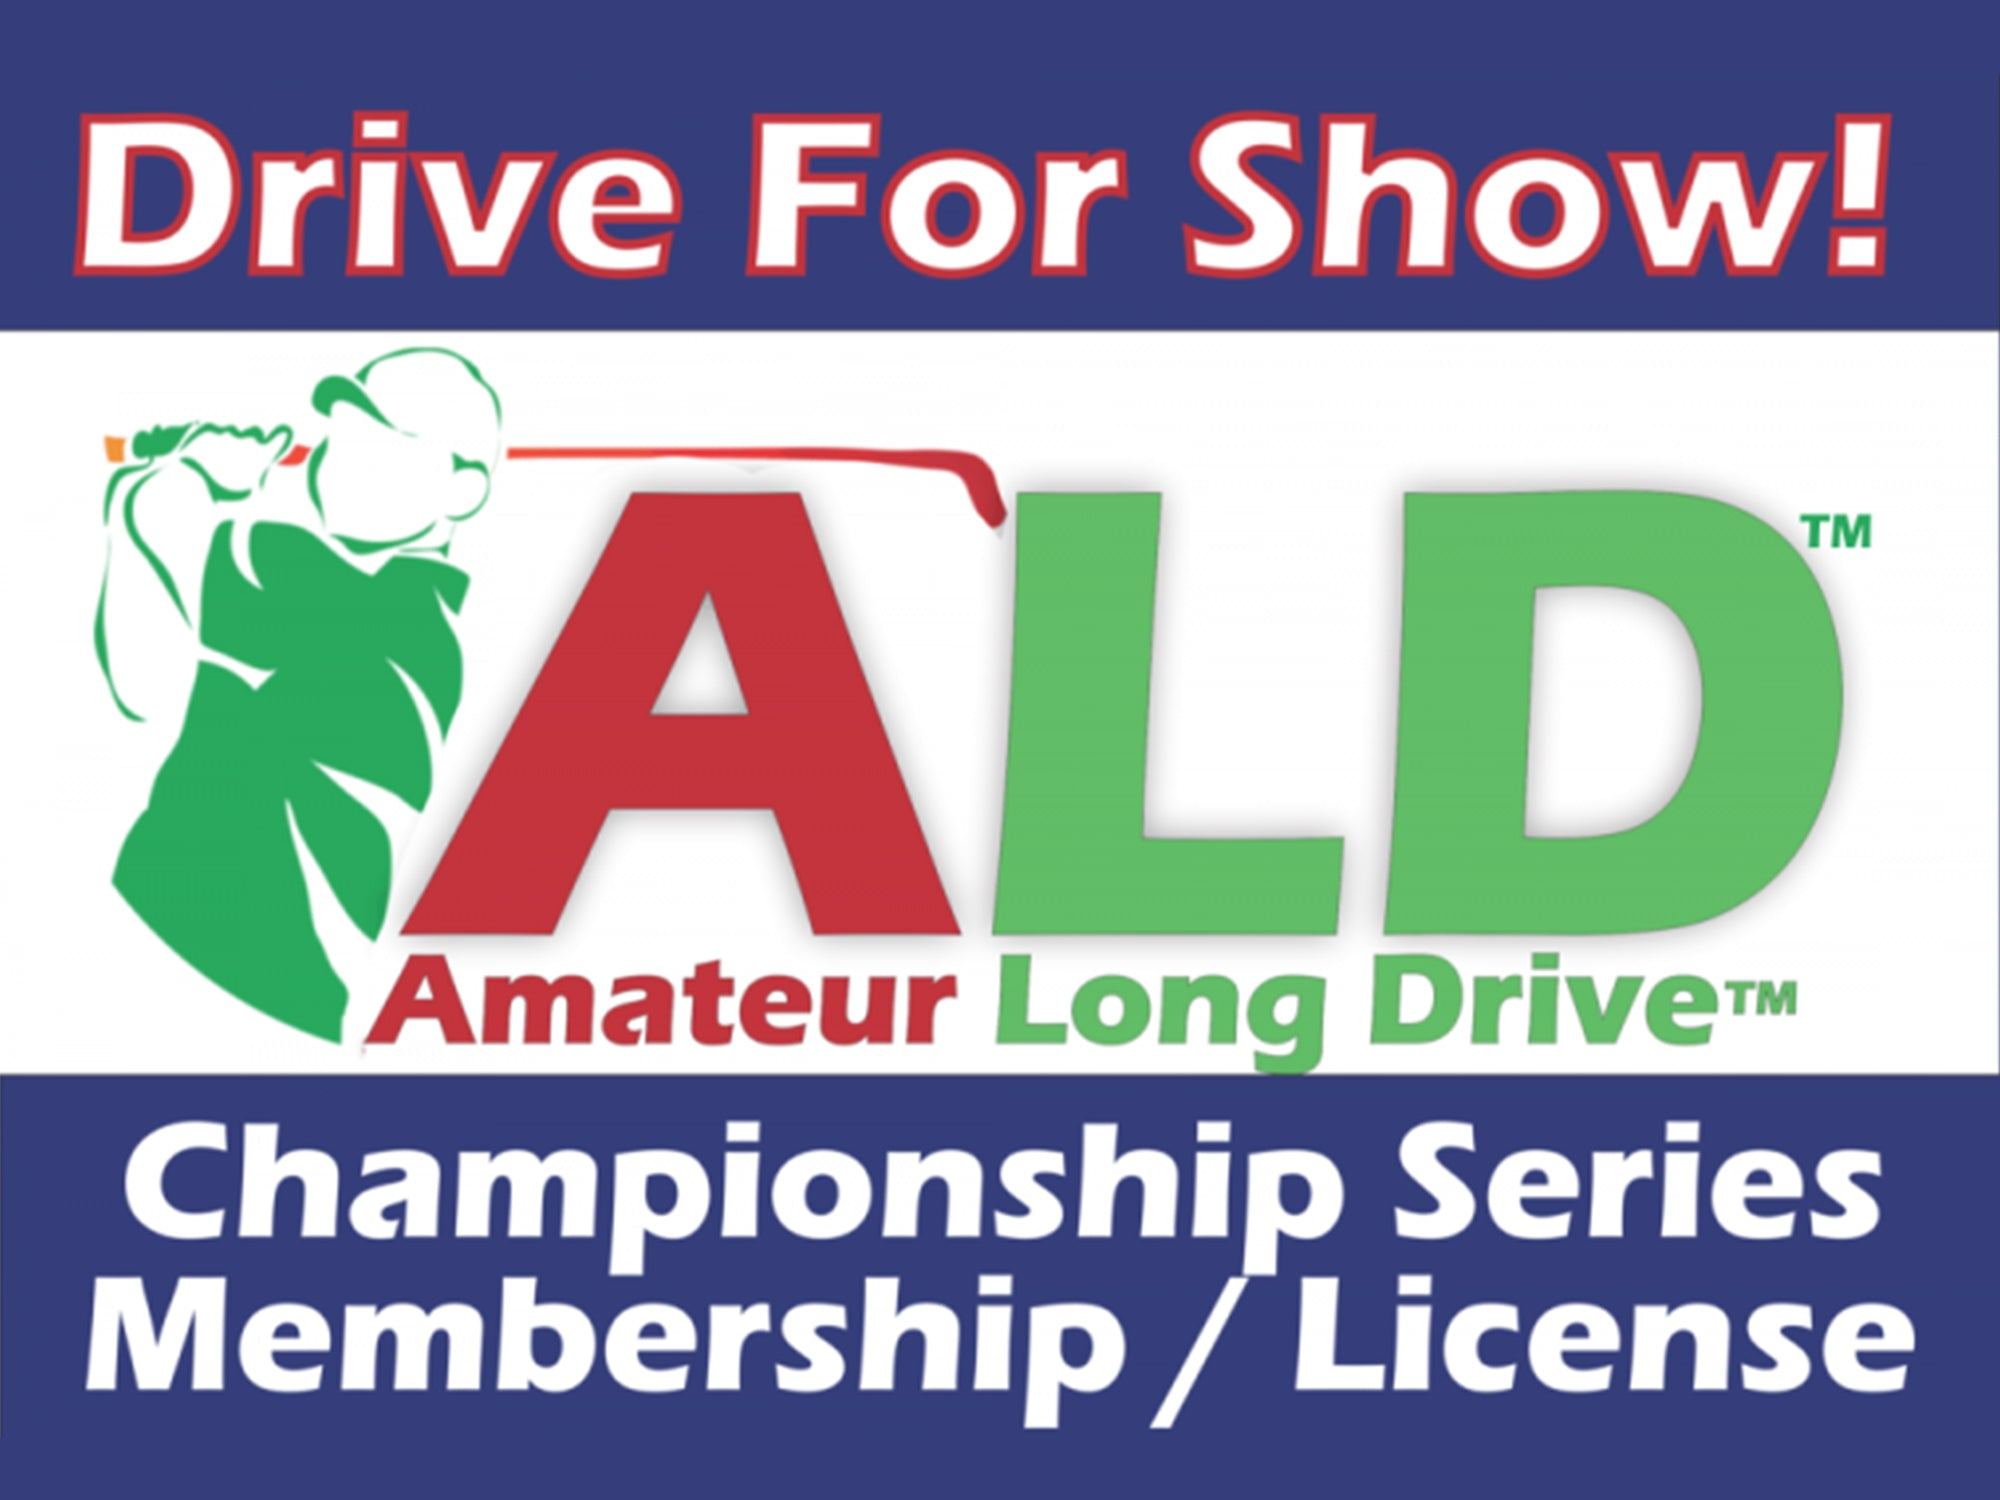 Short Par 4 Announces Their Support and Sponsorship of The Amateur Long Drive Championship Series and World Championship